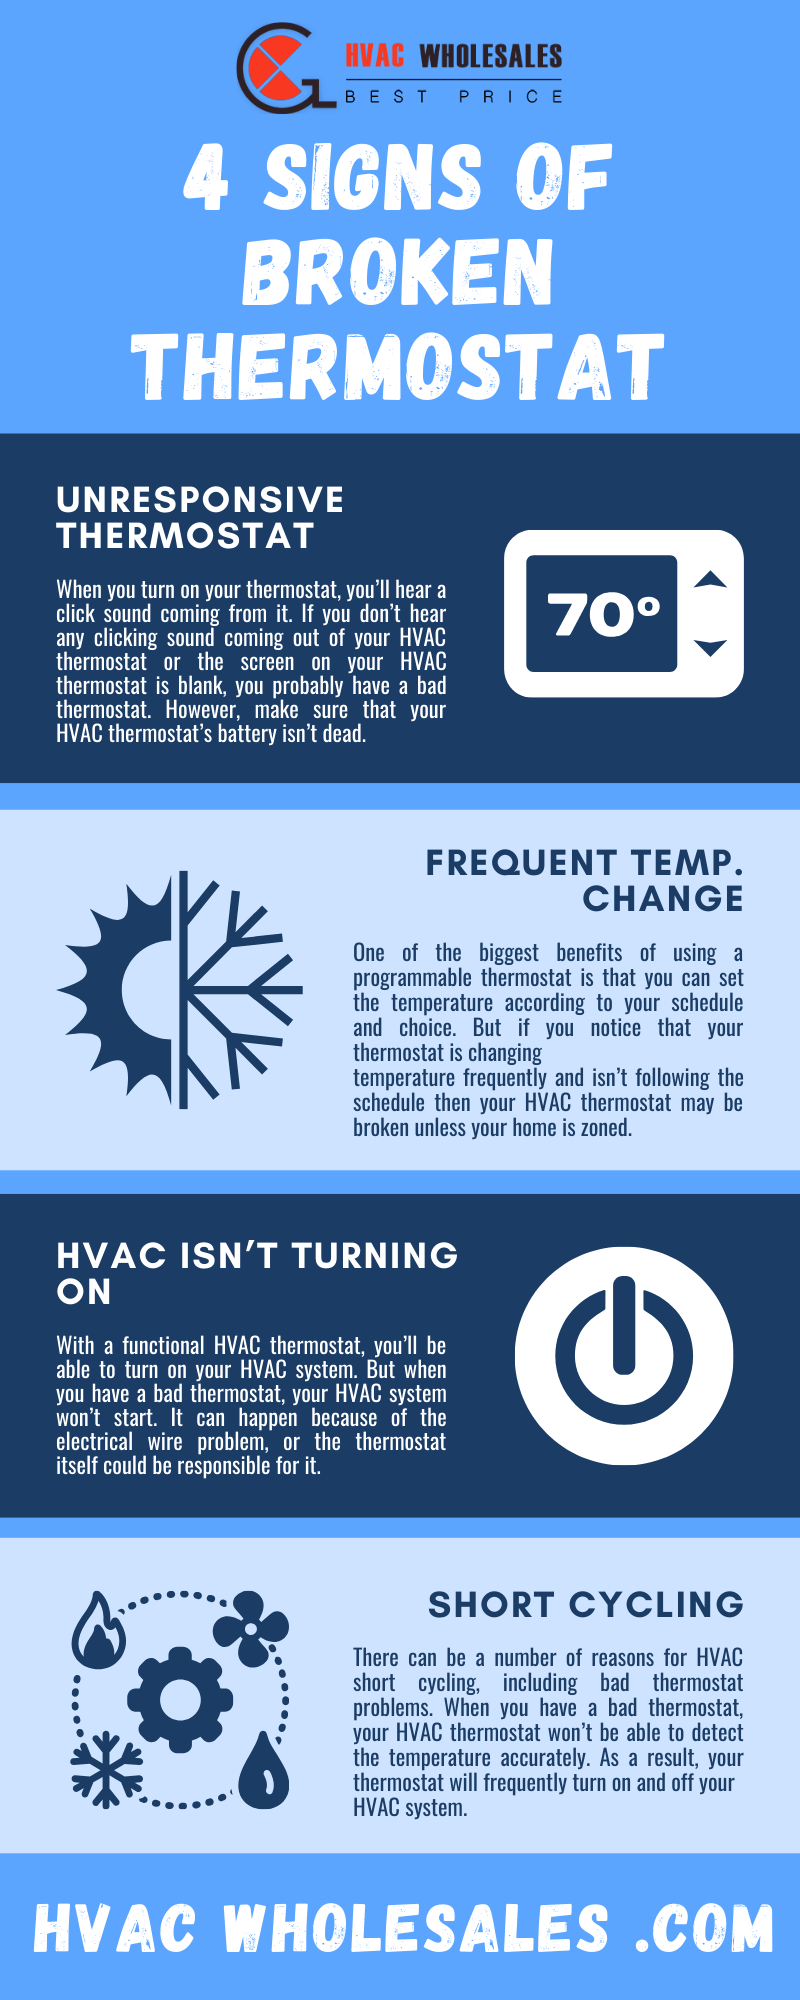 4 Signs of Broken Thermostat